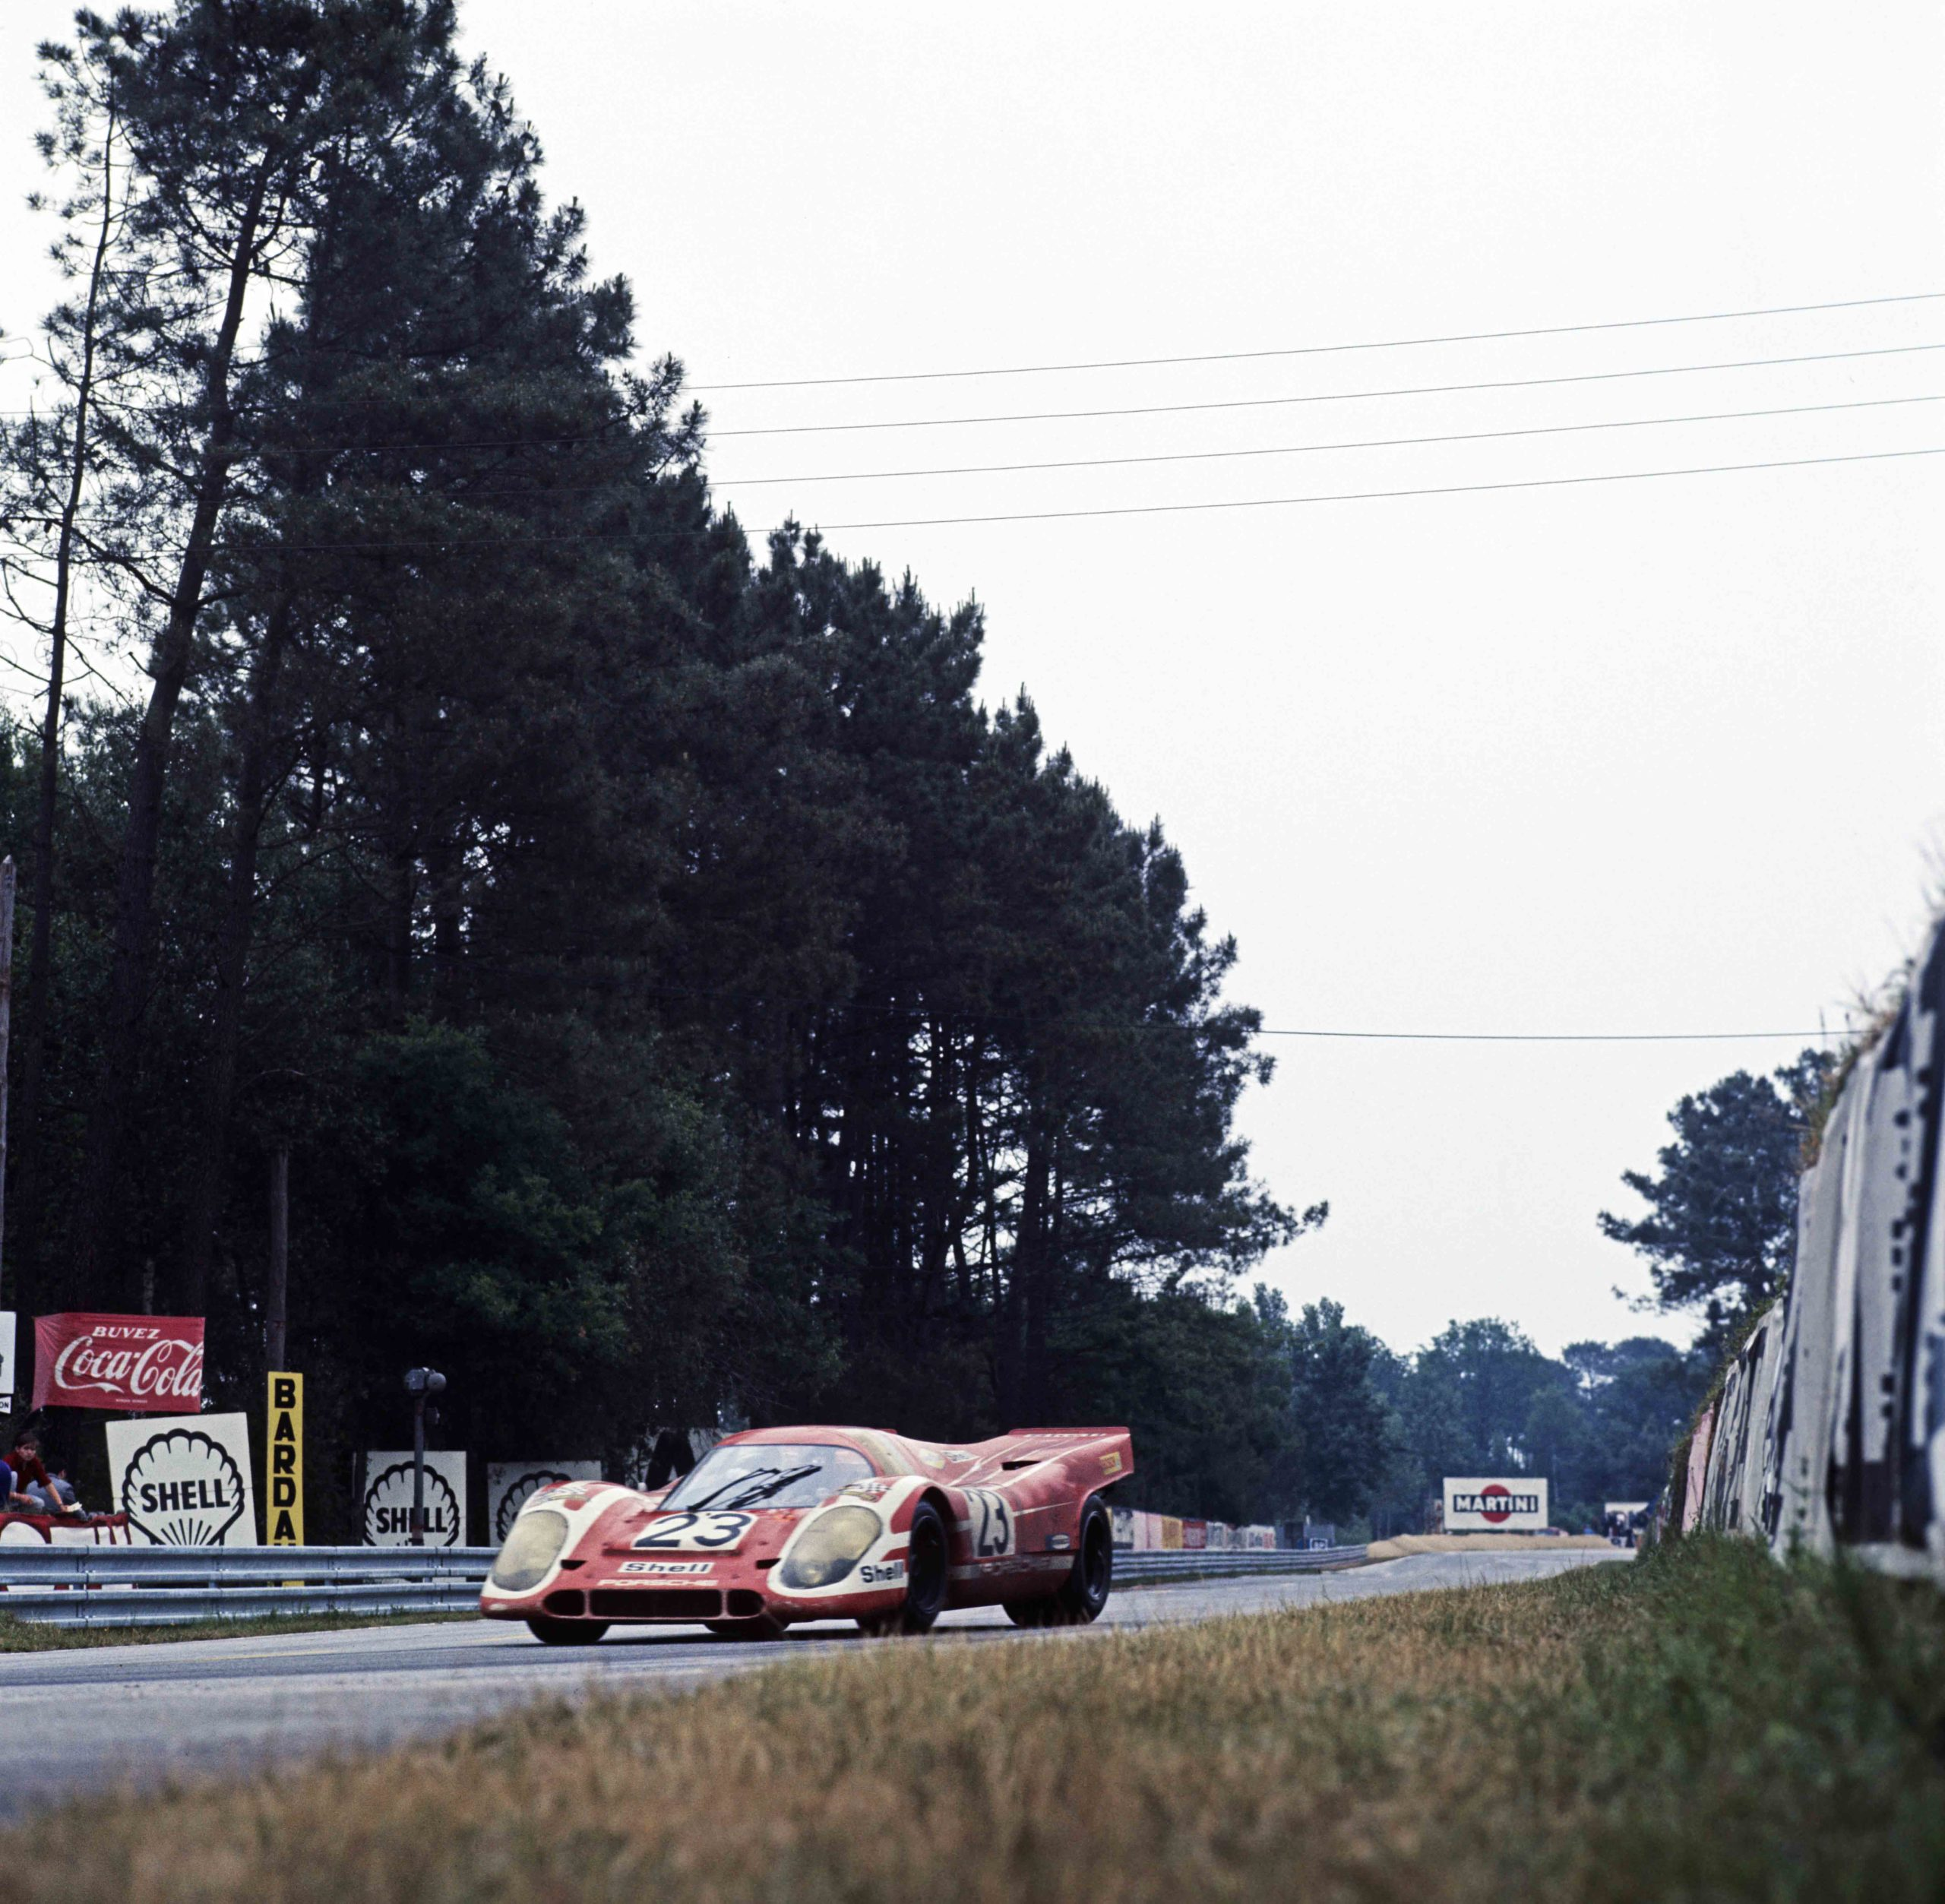 Attwood and Herrmann car No23 at the 1970 Le Mans 24 Hours